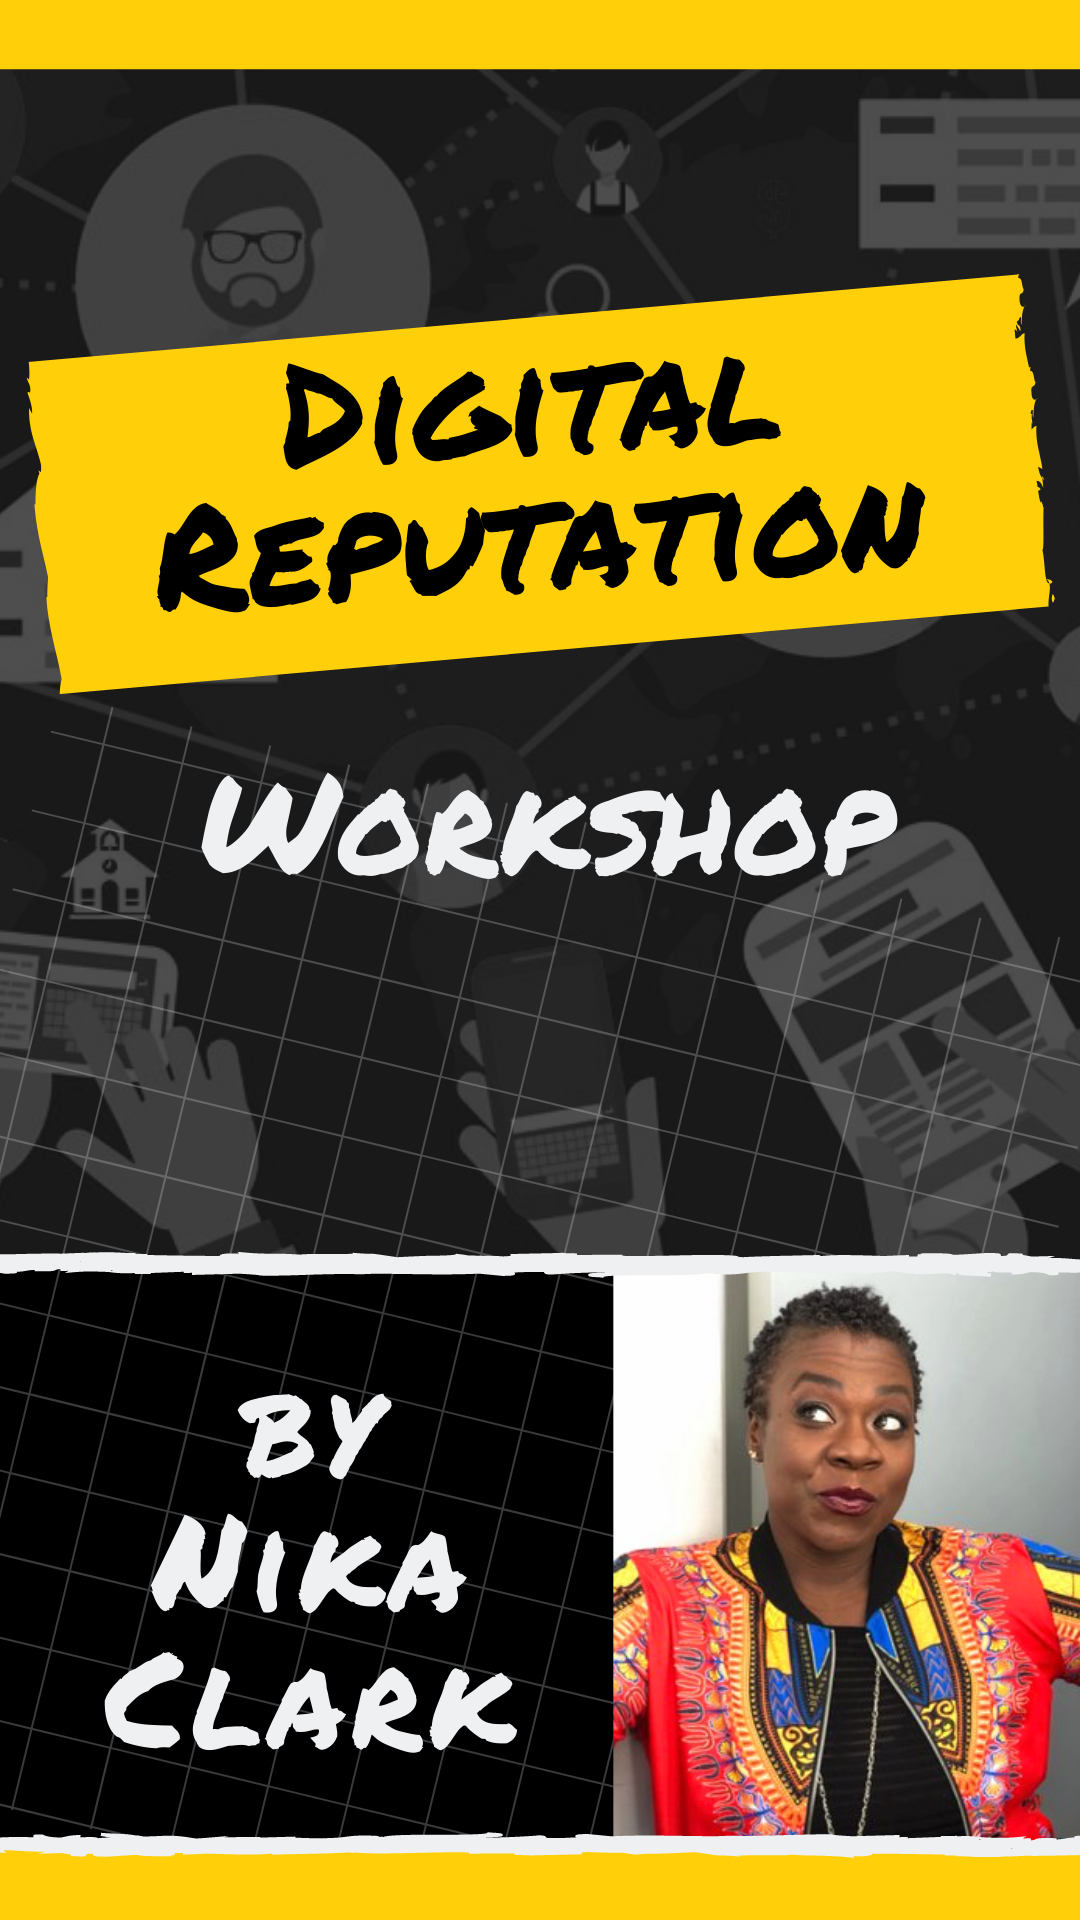 -I did a workshop on paying attention to your Digital Reputation.